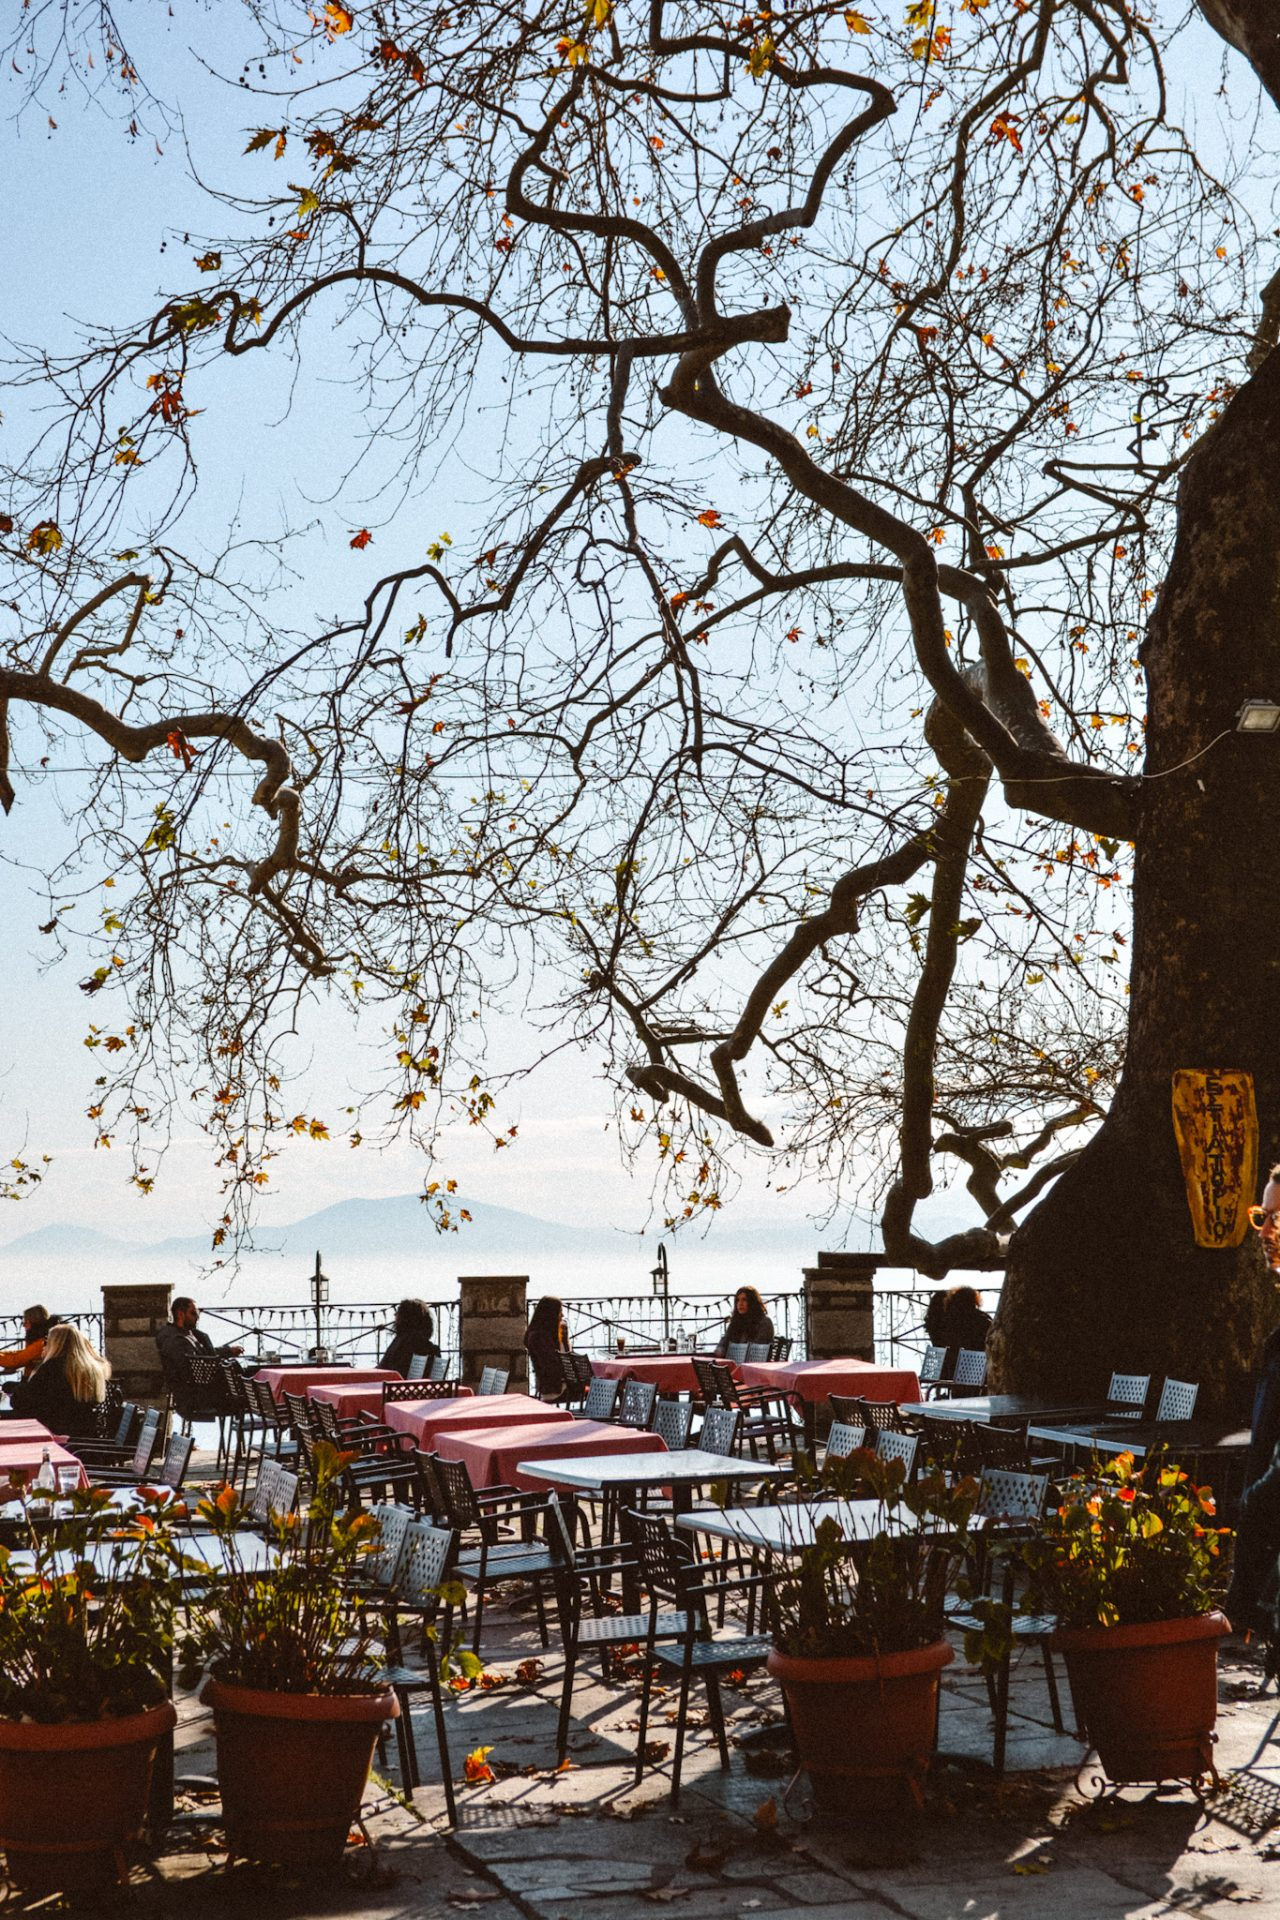 Pelion, Greece travel guide and top things to do in Pelion